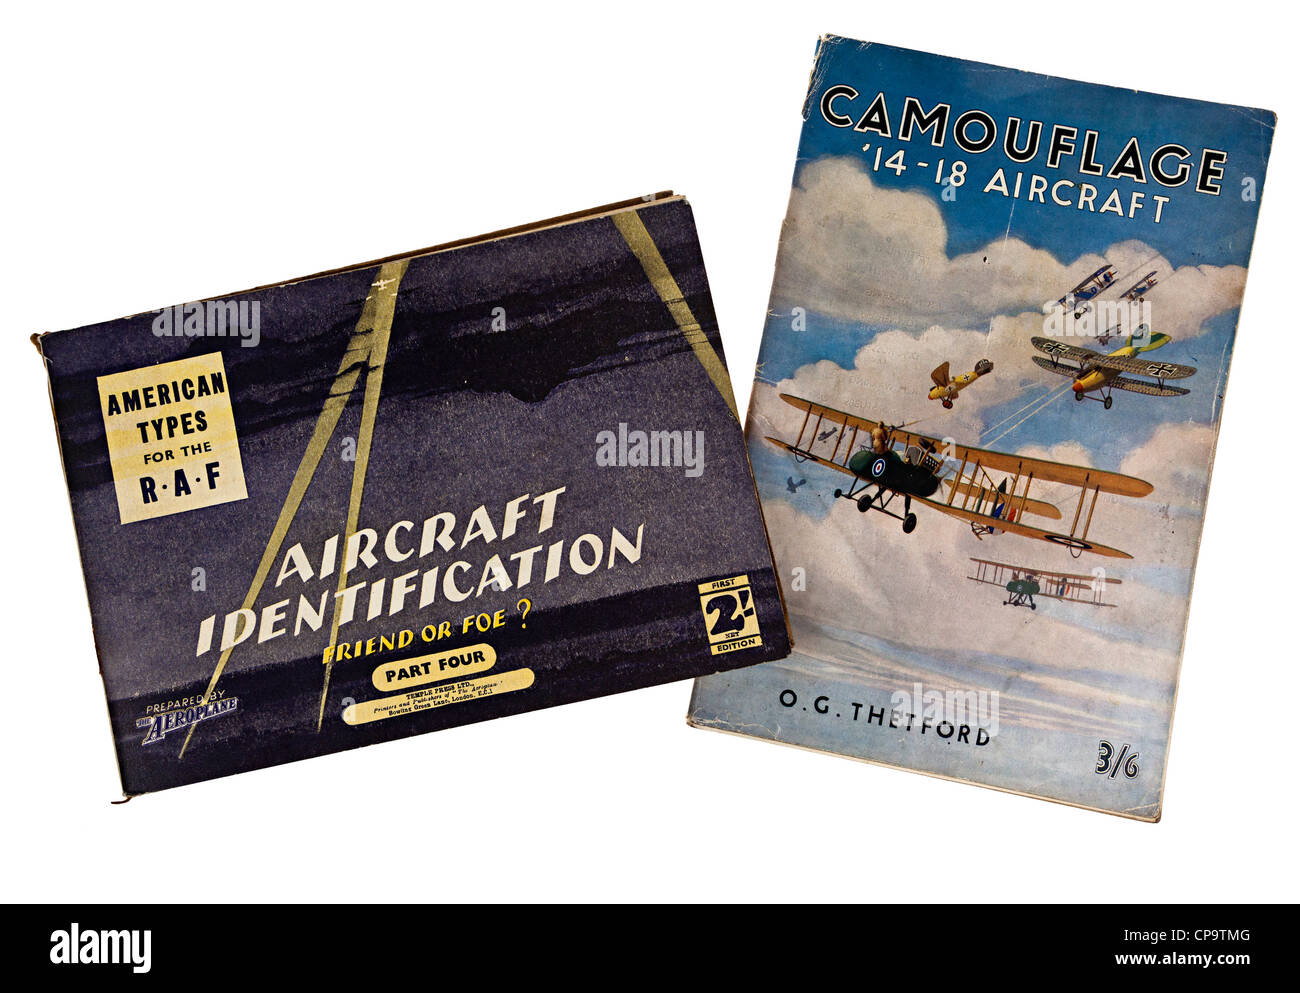 Books on aircraft recognition, identification and camouflage, UK - Stock Image